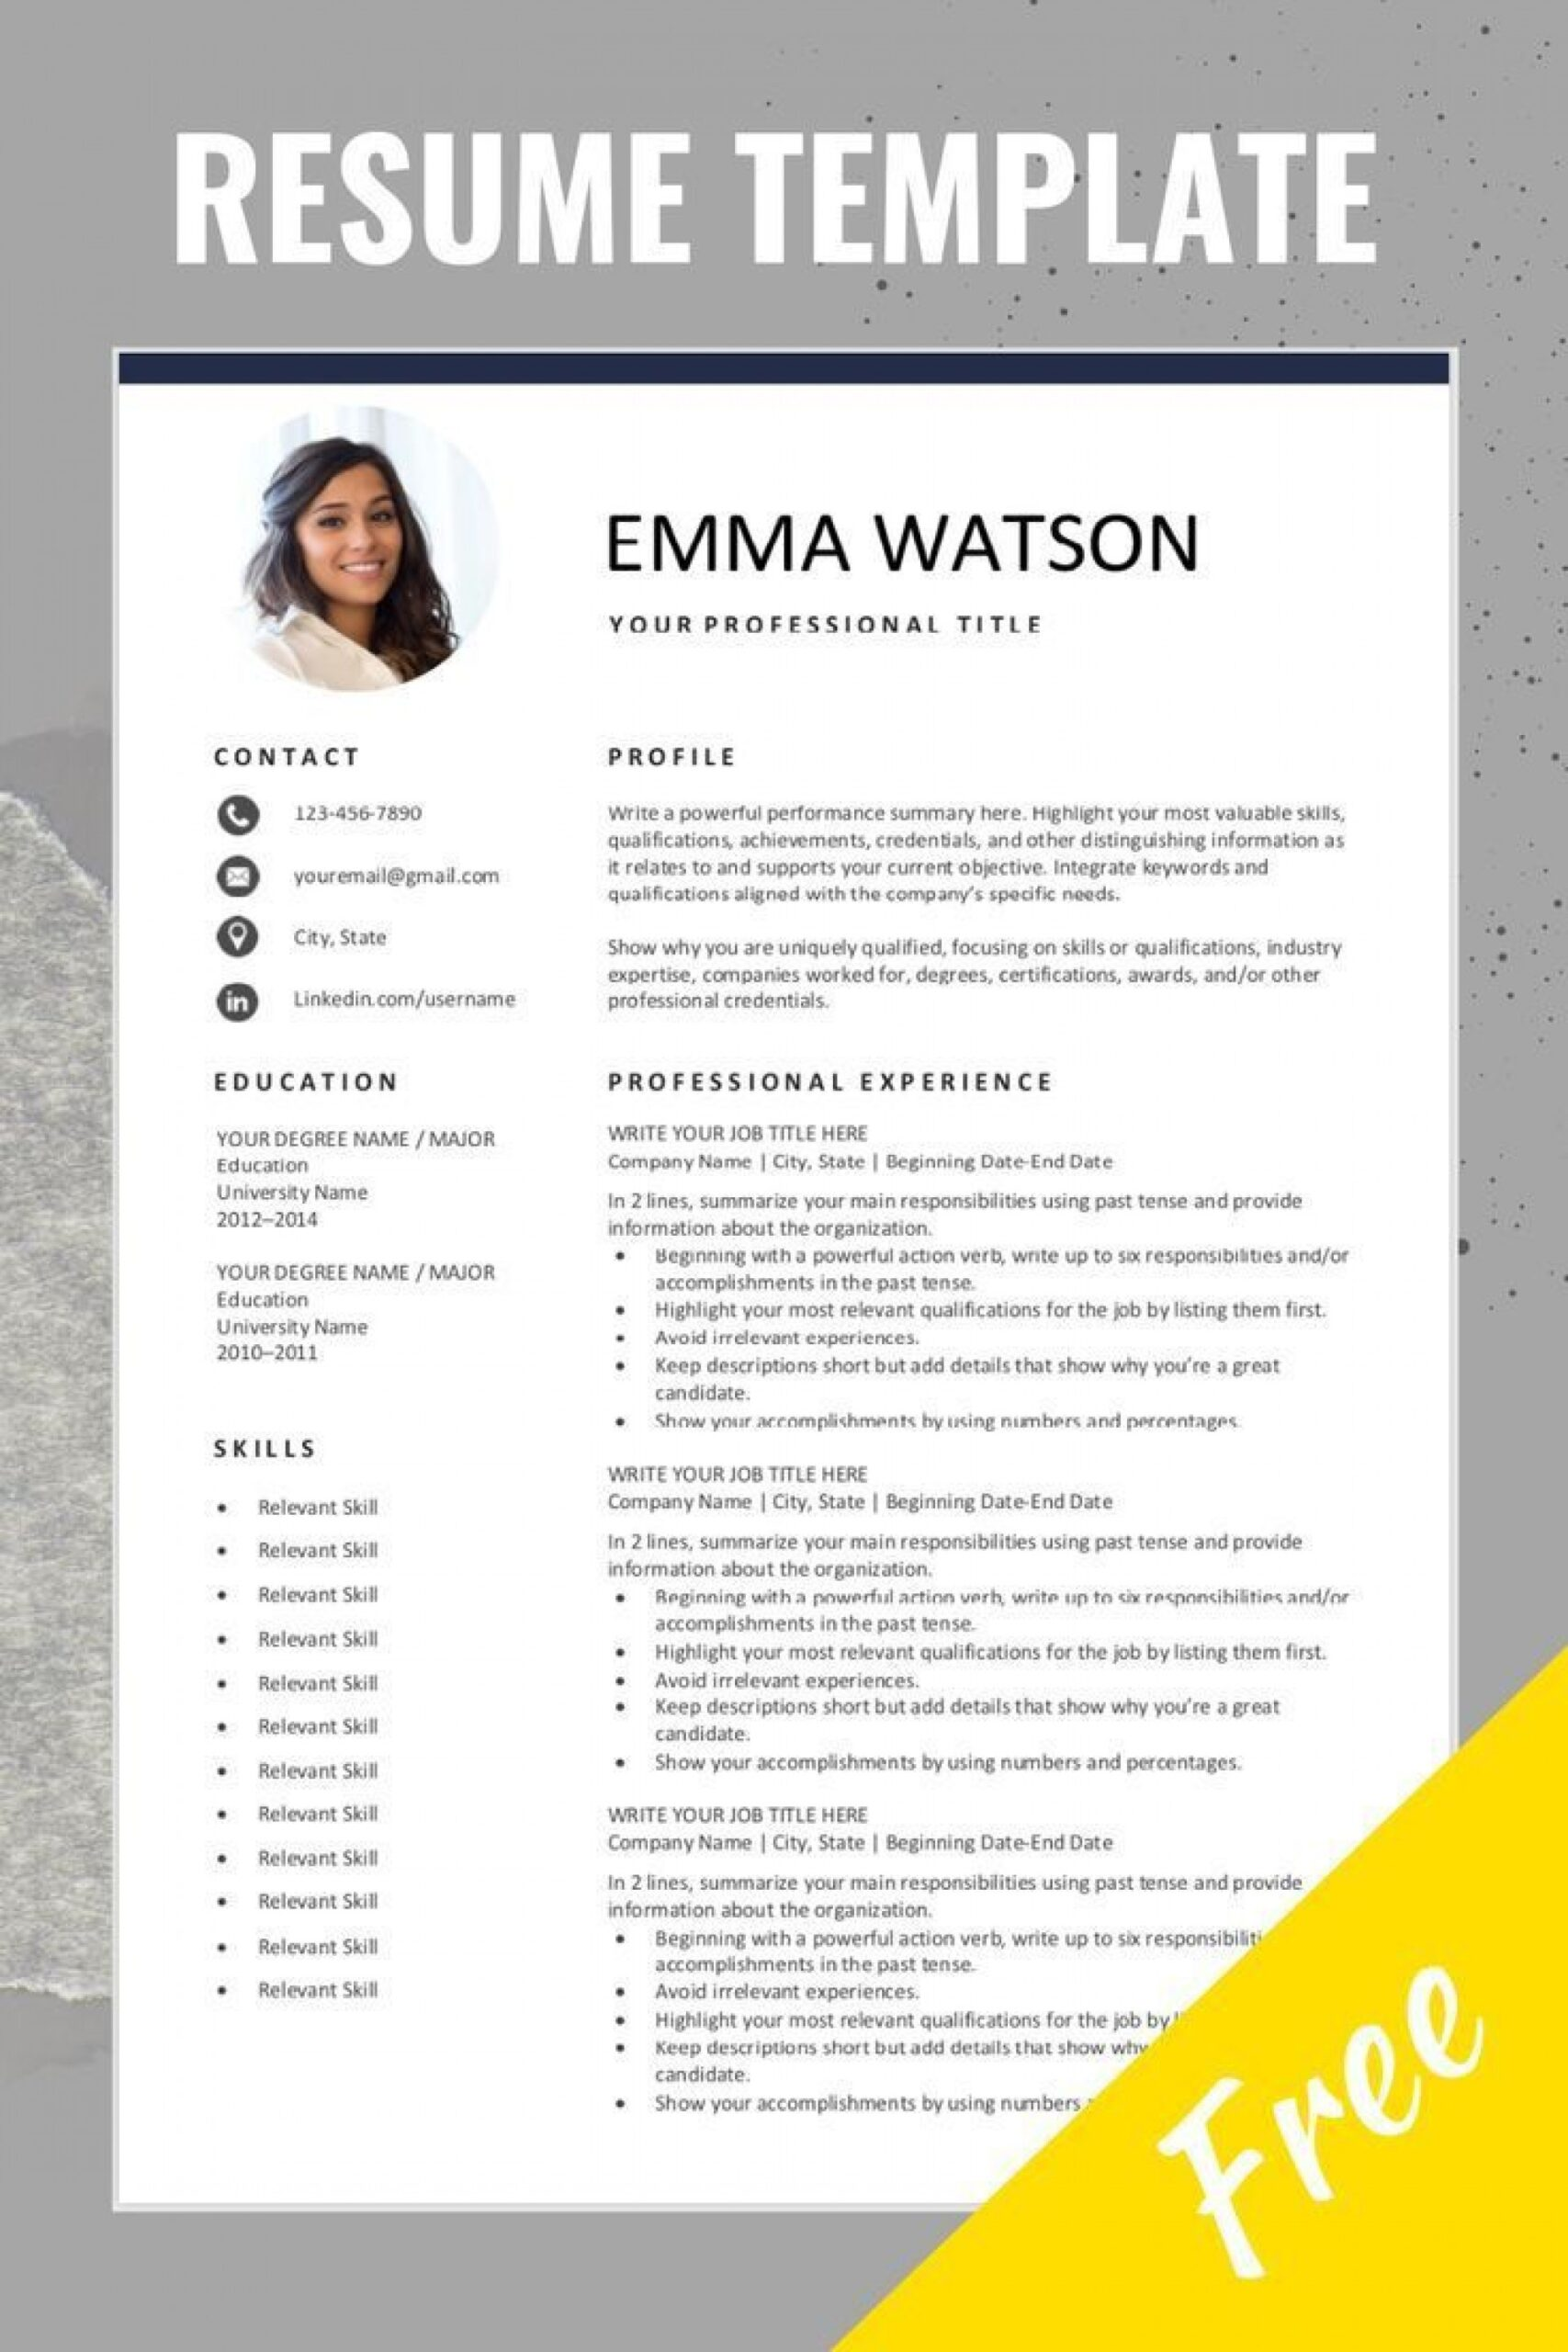 teacher resume template free addictionary unforgettable templates inspirations mba Resume Teacher Resume Template Free